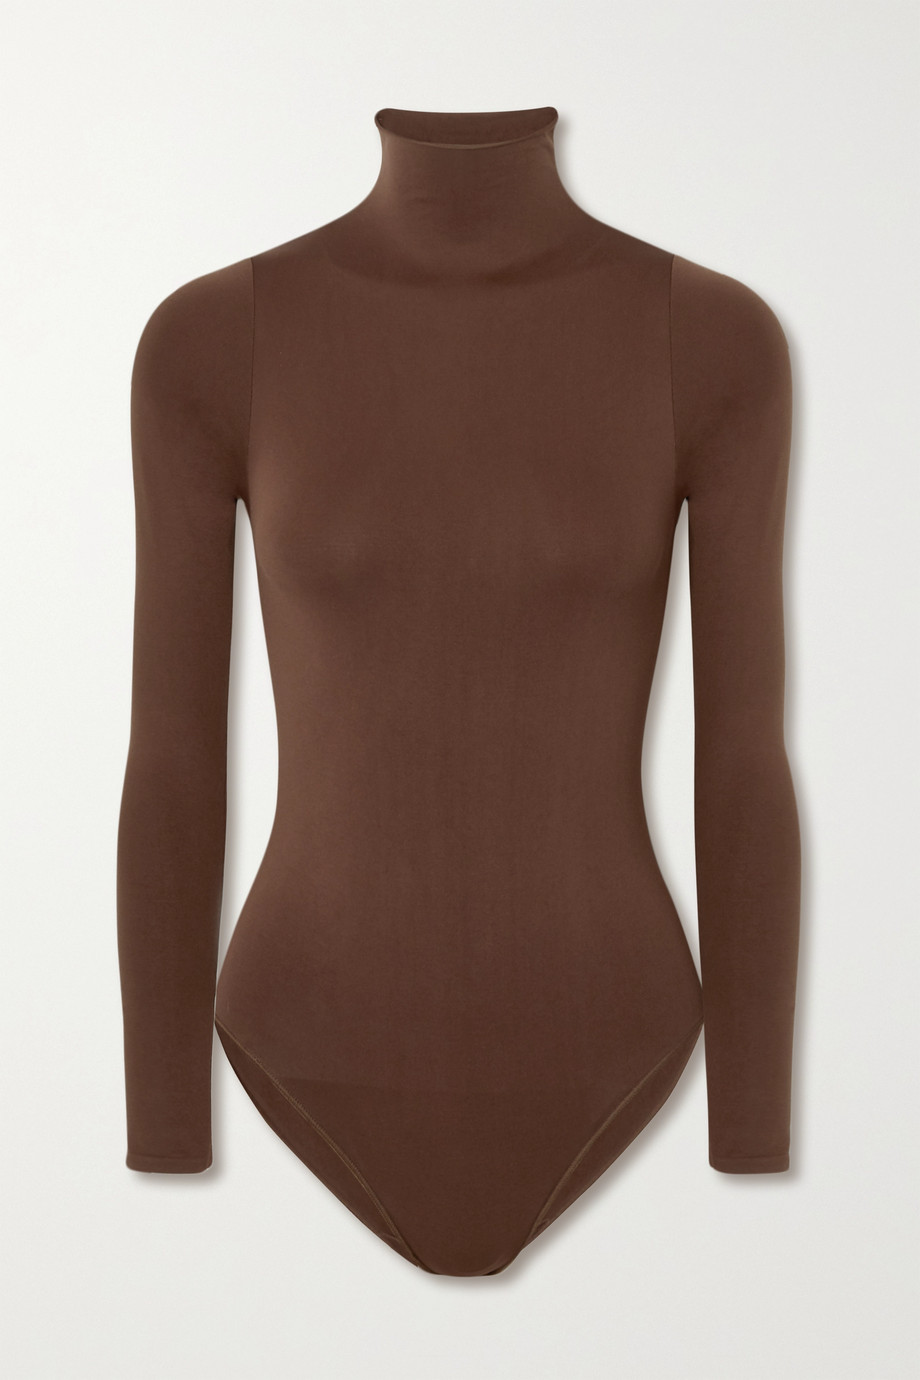 SKIMS Essential Mock Neck bodysuit